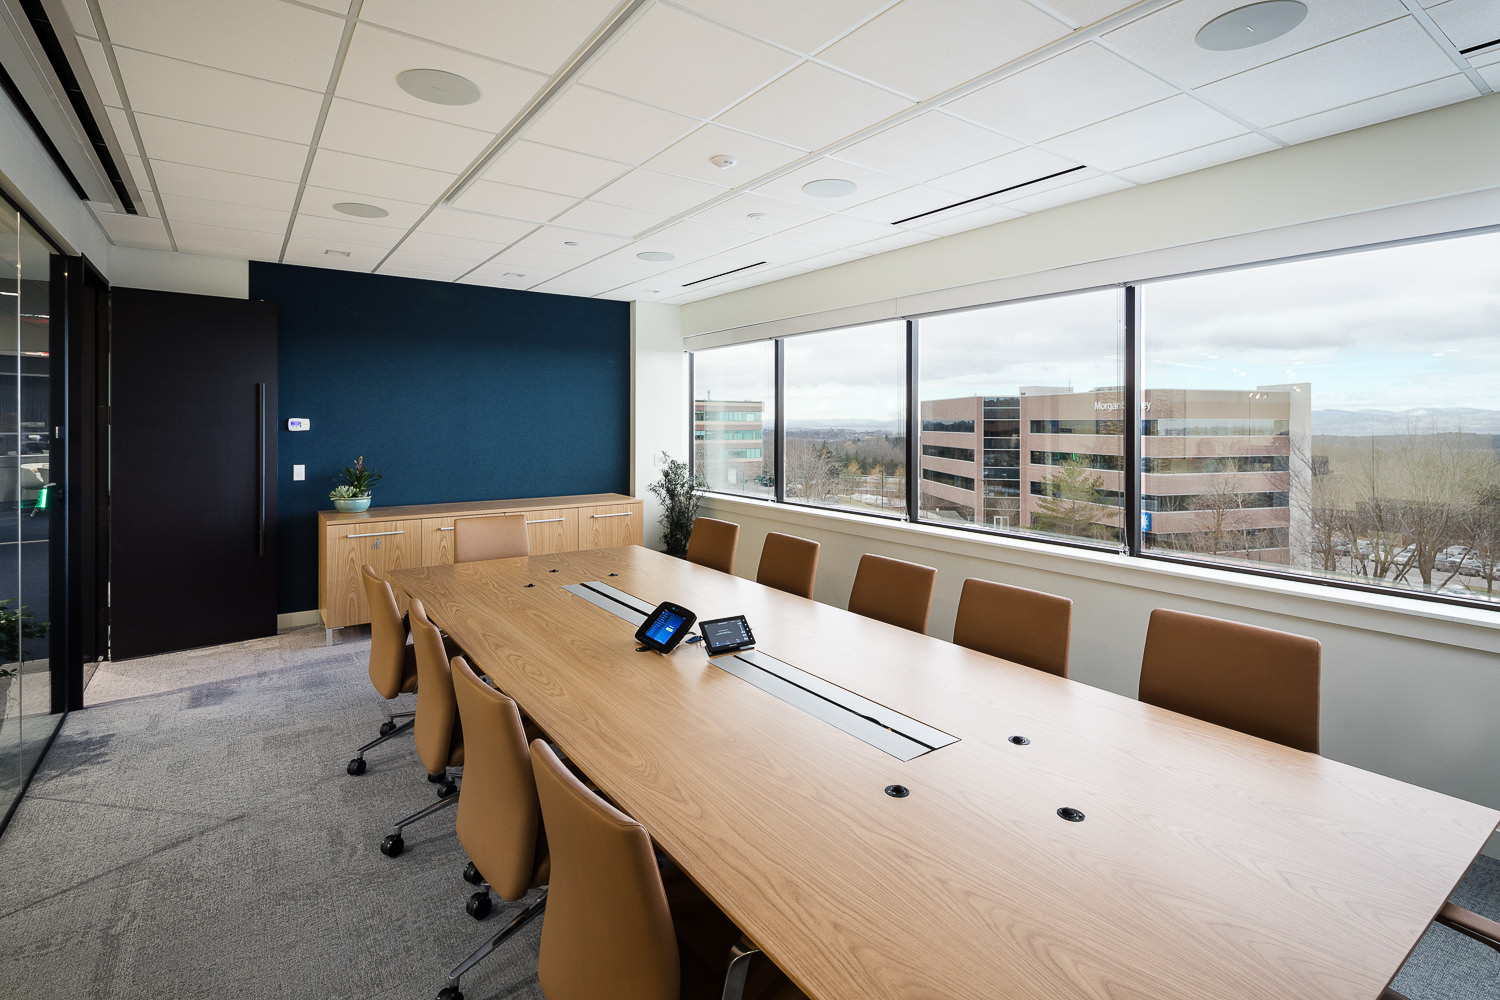 A corporate conference room feels open due to large windows with westerly views of Lake Champlain and glass walls with a view into interior office spaces.